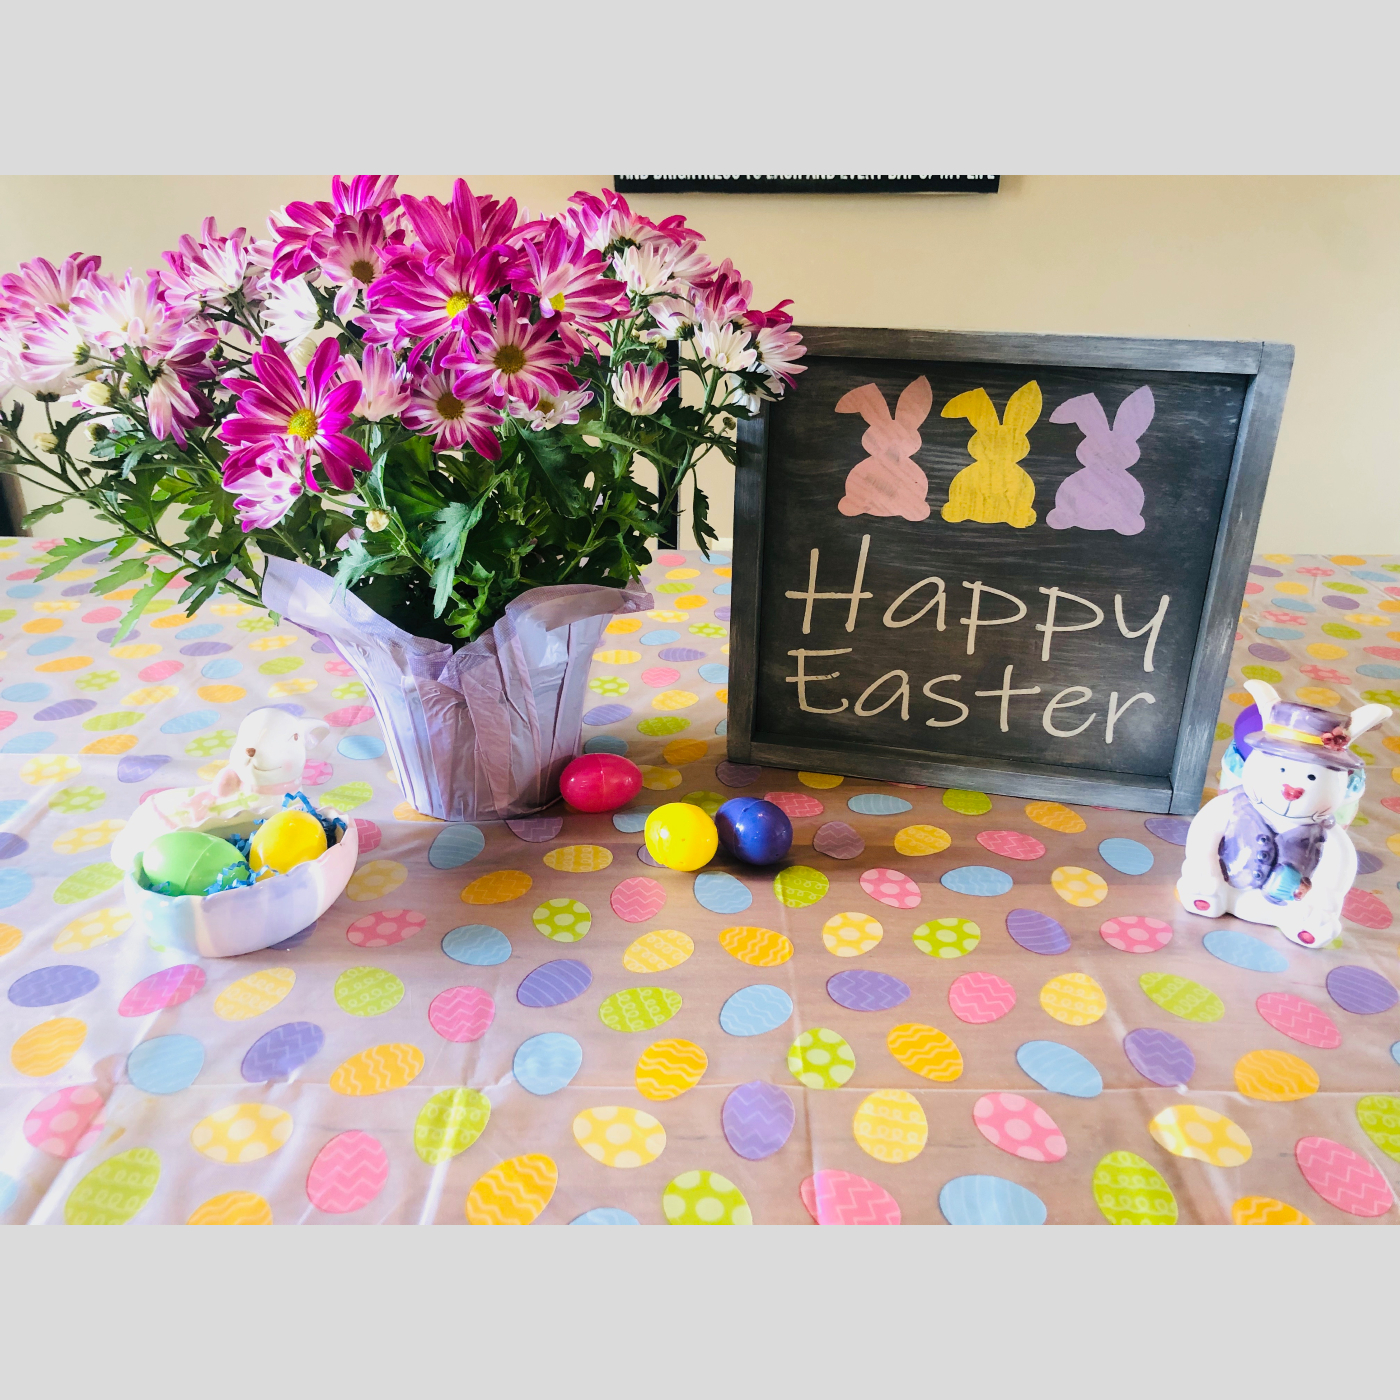 Happy Easter Framed DIY wood sign